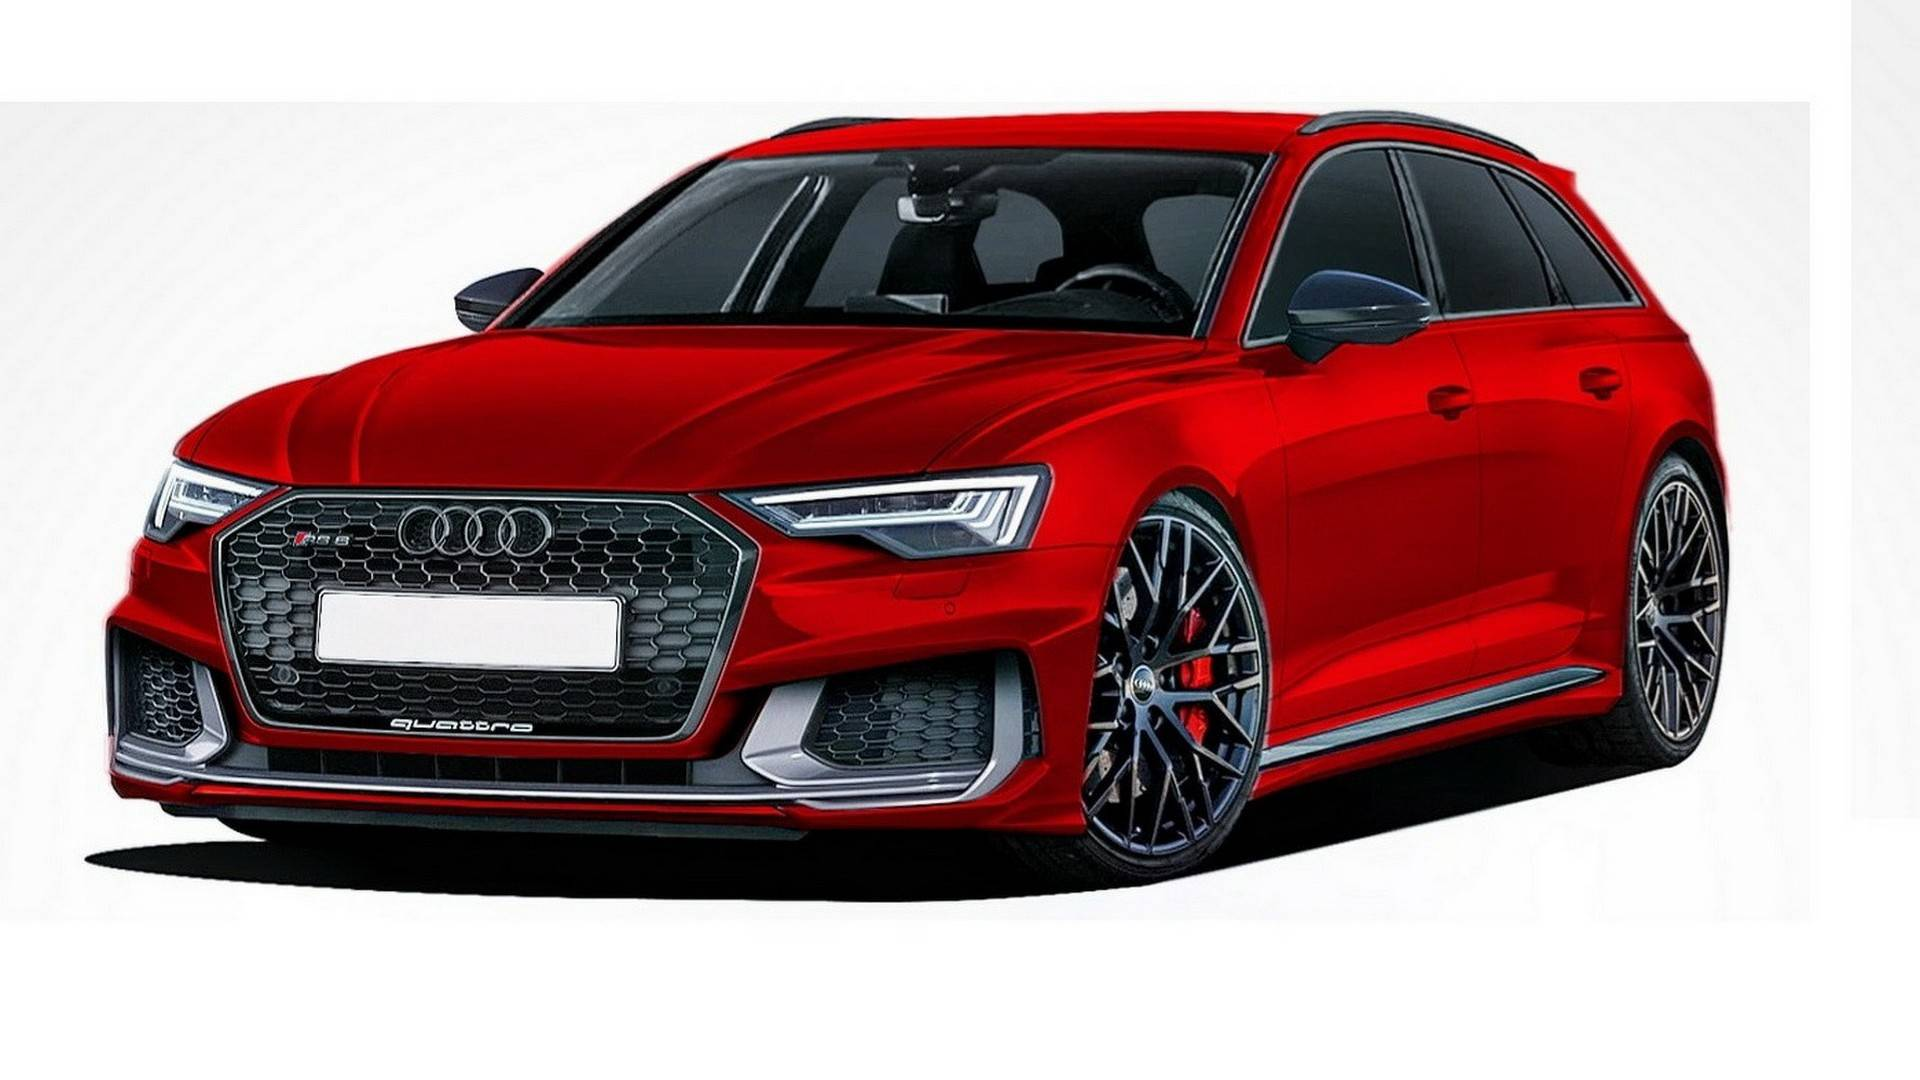 all new eight gen 2019 audi a6 sedan revealed features standard mild hybrid systems for all. Black Bedroom Furniture Sets. Home Design Ideas